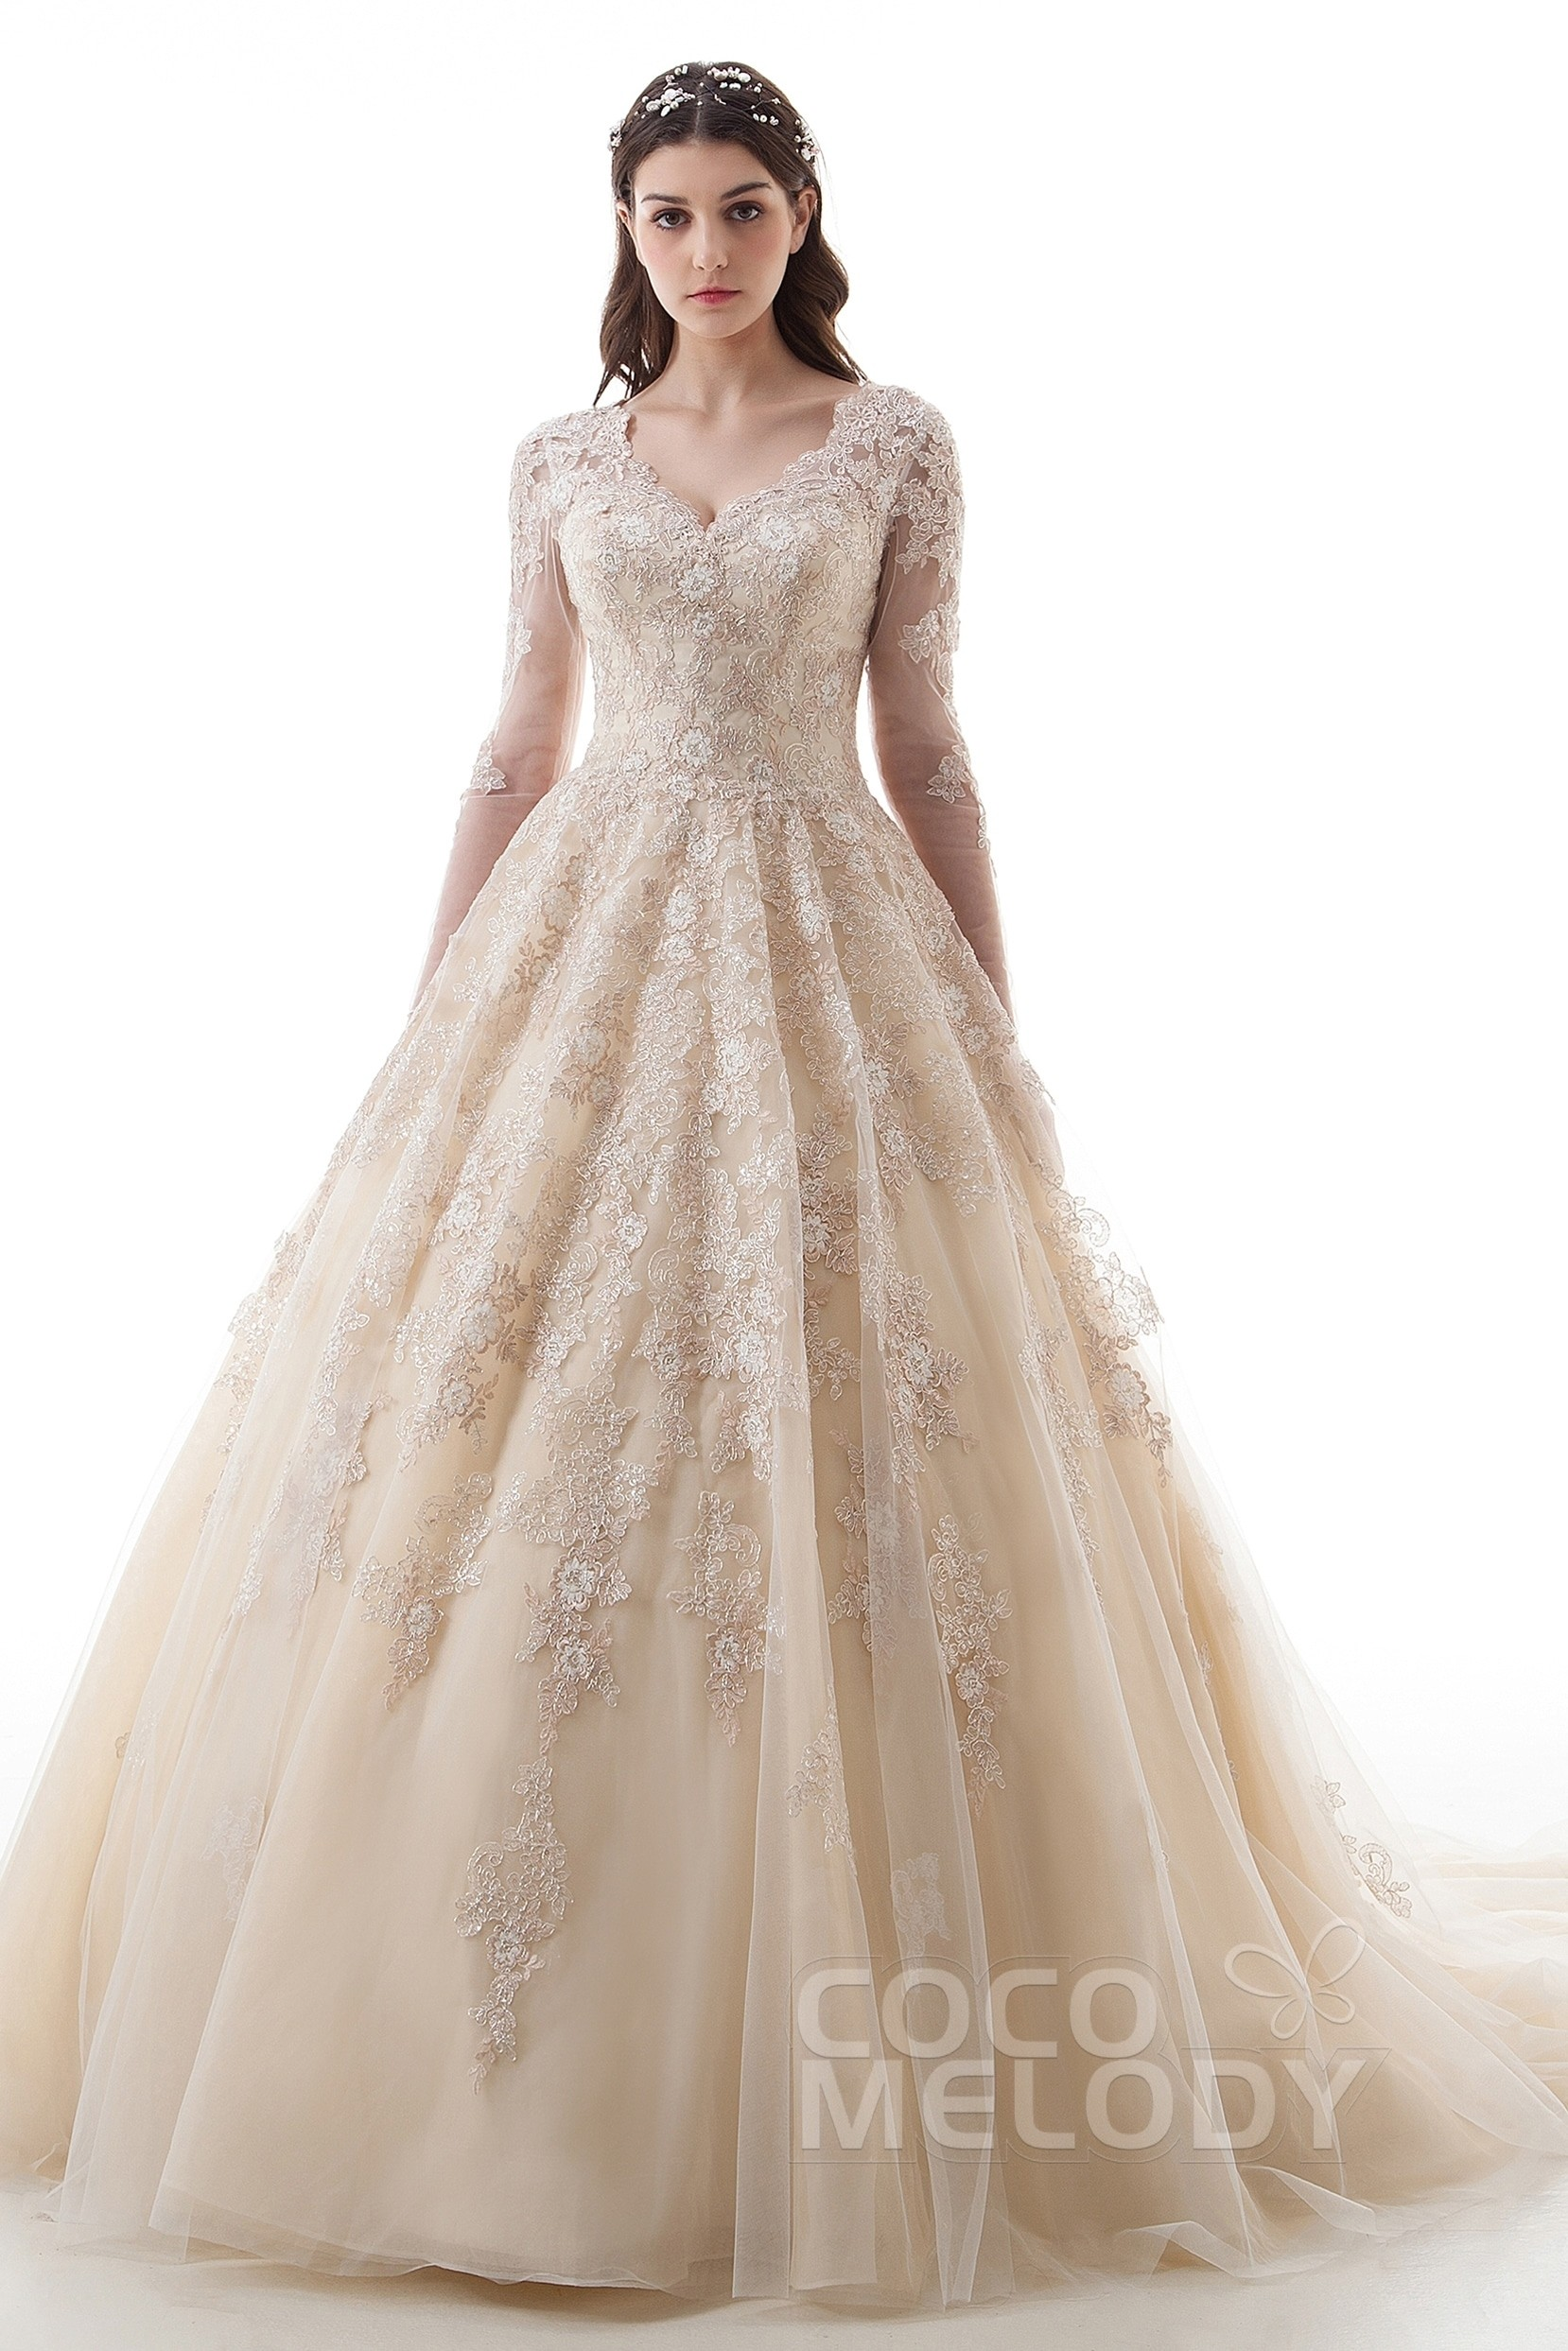 86e5d80ff7c Princess Court Train Tulle Gothic Wedding Dress LD4622